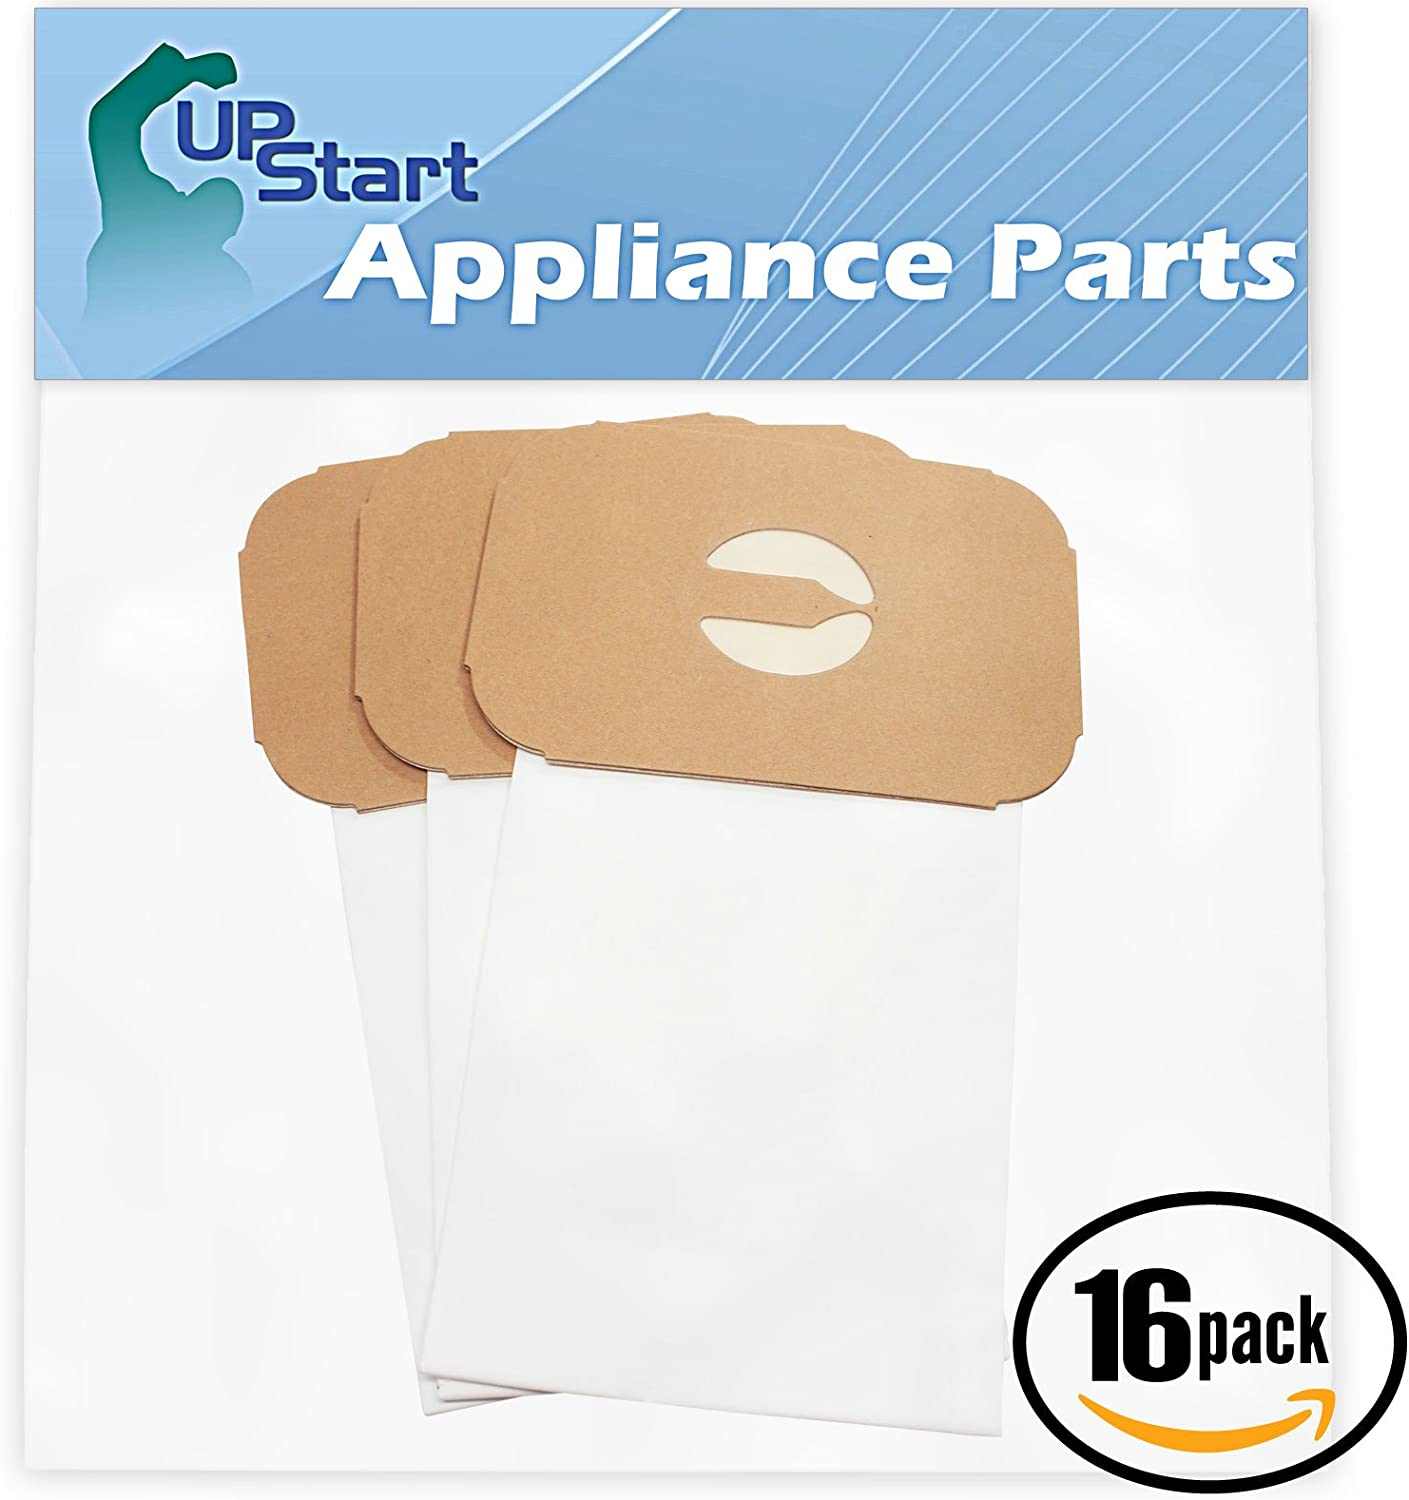 Upstart Battery 48 Replacement for Aerus/Electrolux Golden Jubilee Style C Vacuum Bags - Compatible with Aerus/Electrolux Canister Tank Type C Vacuum Bags (16-Pack - 3 Vacuum Bags per Pack)